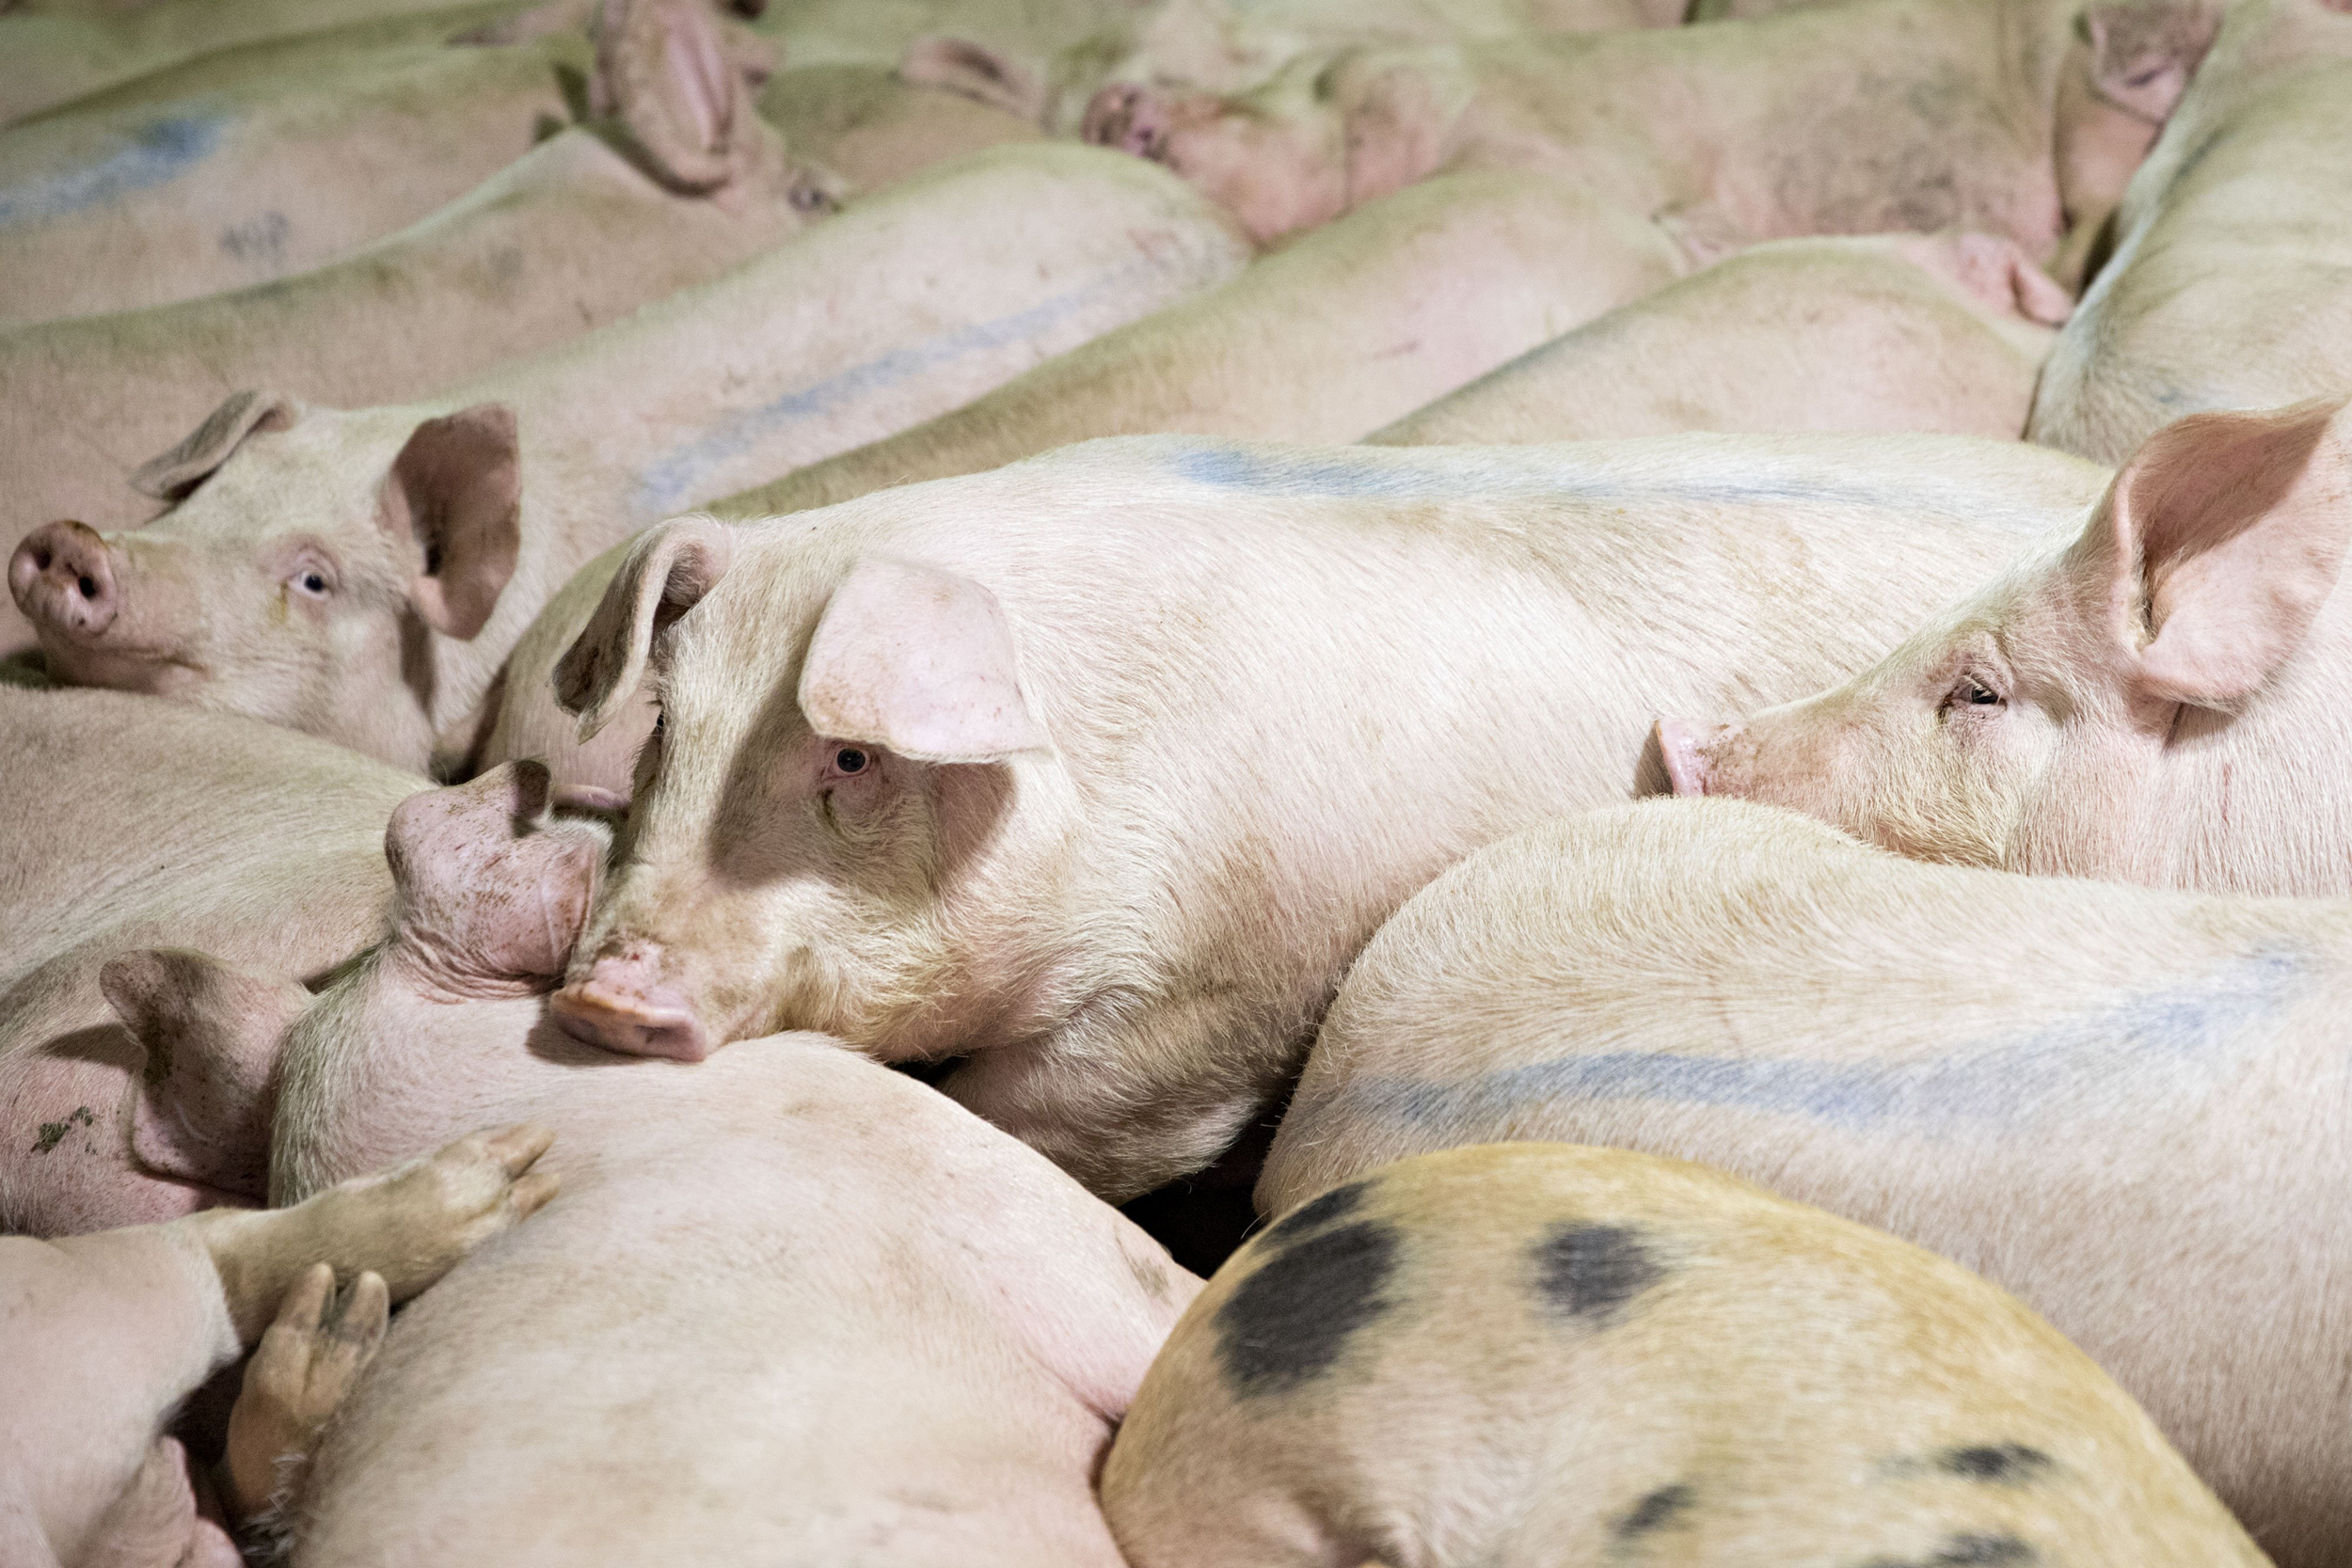 Trump administration allows pork slaughterhouses to have fewer USDA inspectors